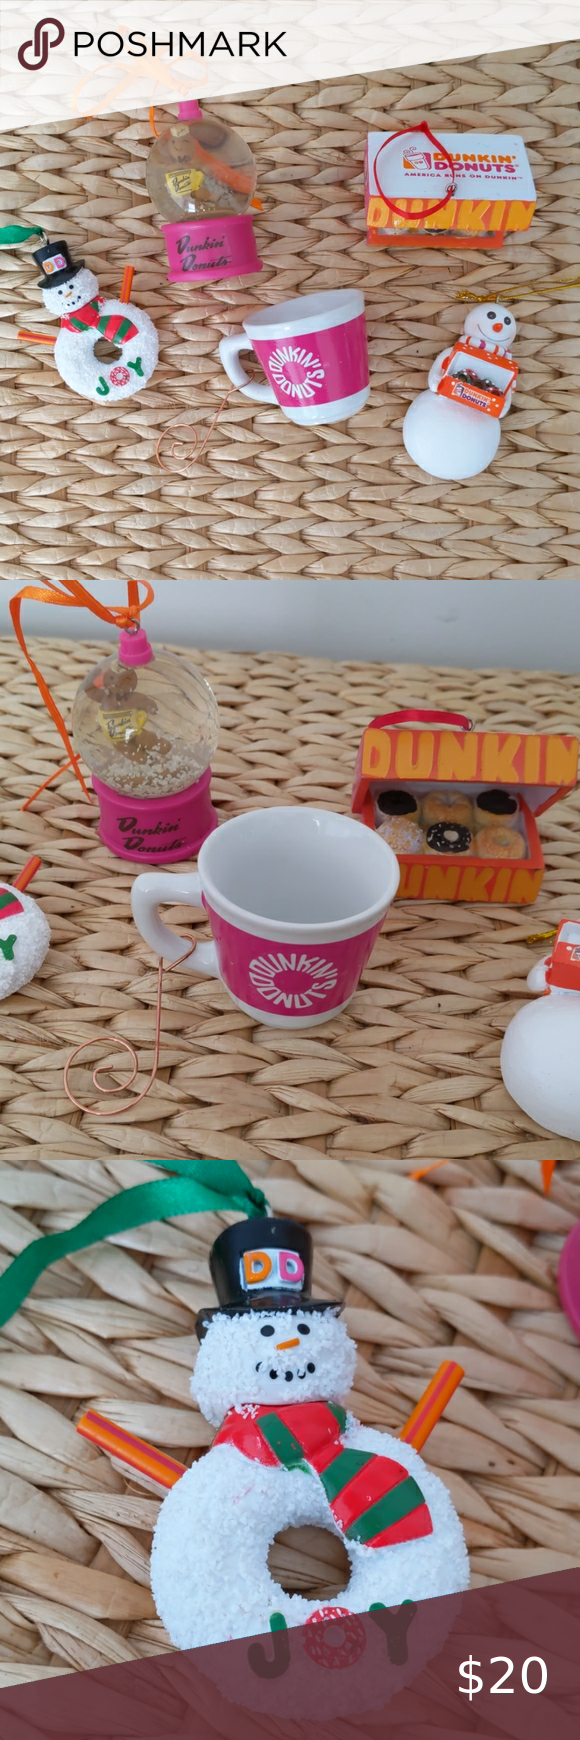 Dunkin Donuts Christmas Ornaments 2020 Collection of 5 Dunkin Donuts ornaments in 2020 | Dunkin donuts